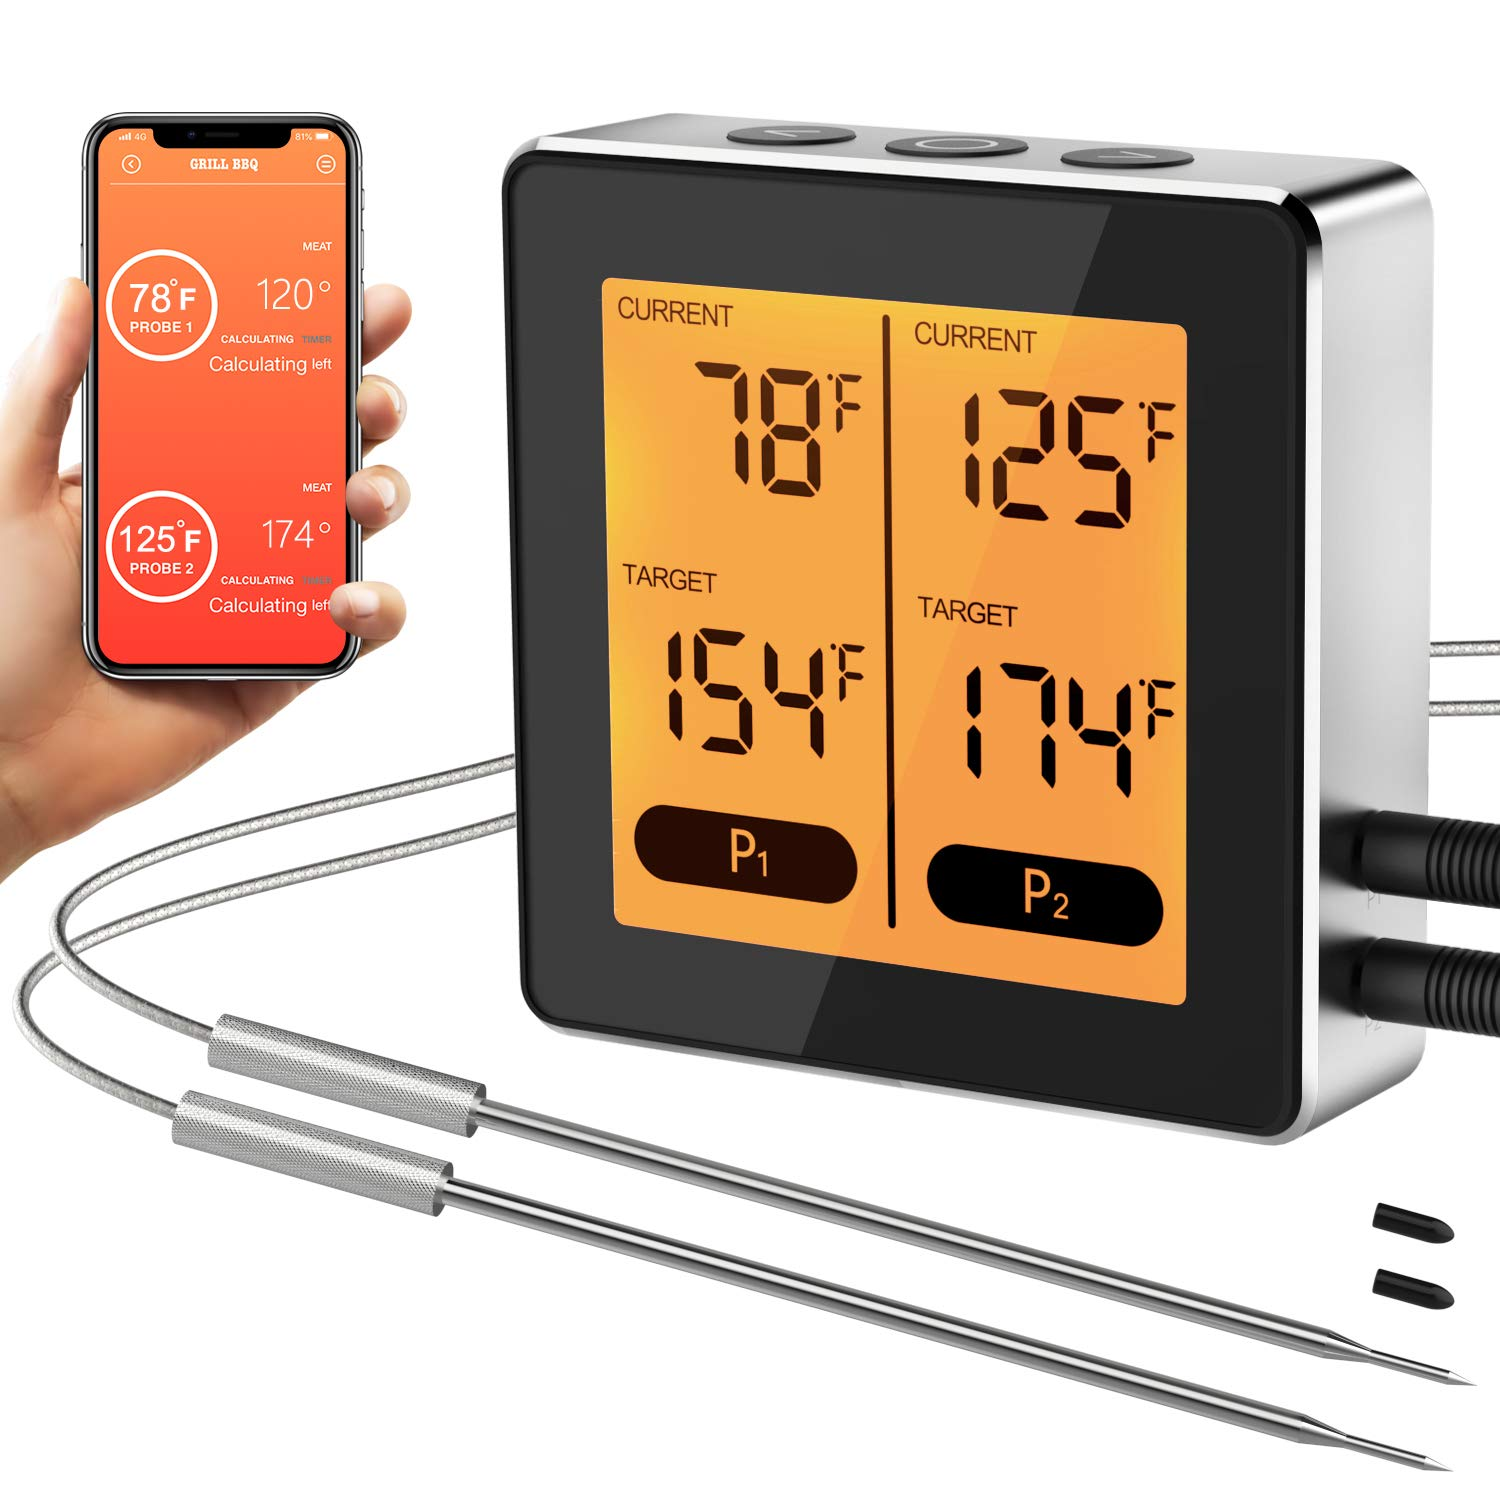 TURATA Bluetooth Meat Thermometer Smart APP Remote Control Digital Wireless Cooking Thermometer Alarm Timer for Grilling, Oven, Smoker and BBQ, 17 Types of Foods, 5 Tastes and Programmed Setting